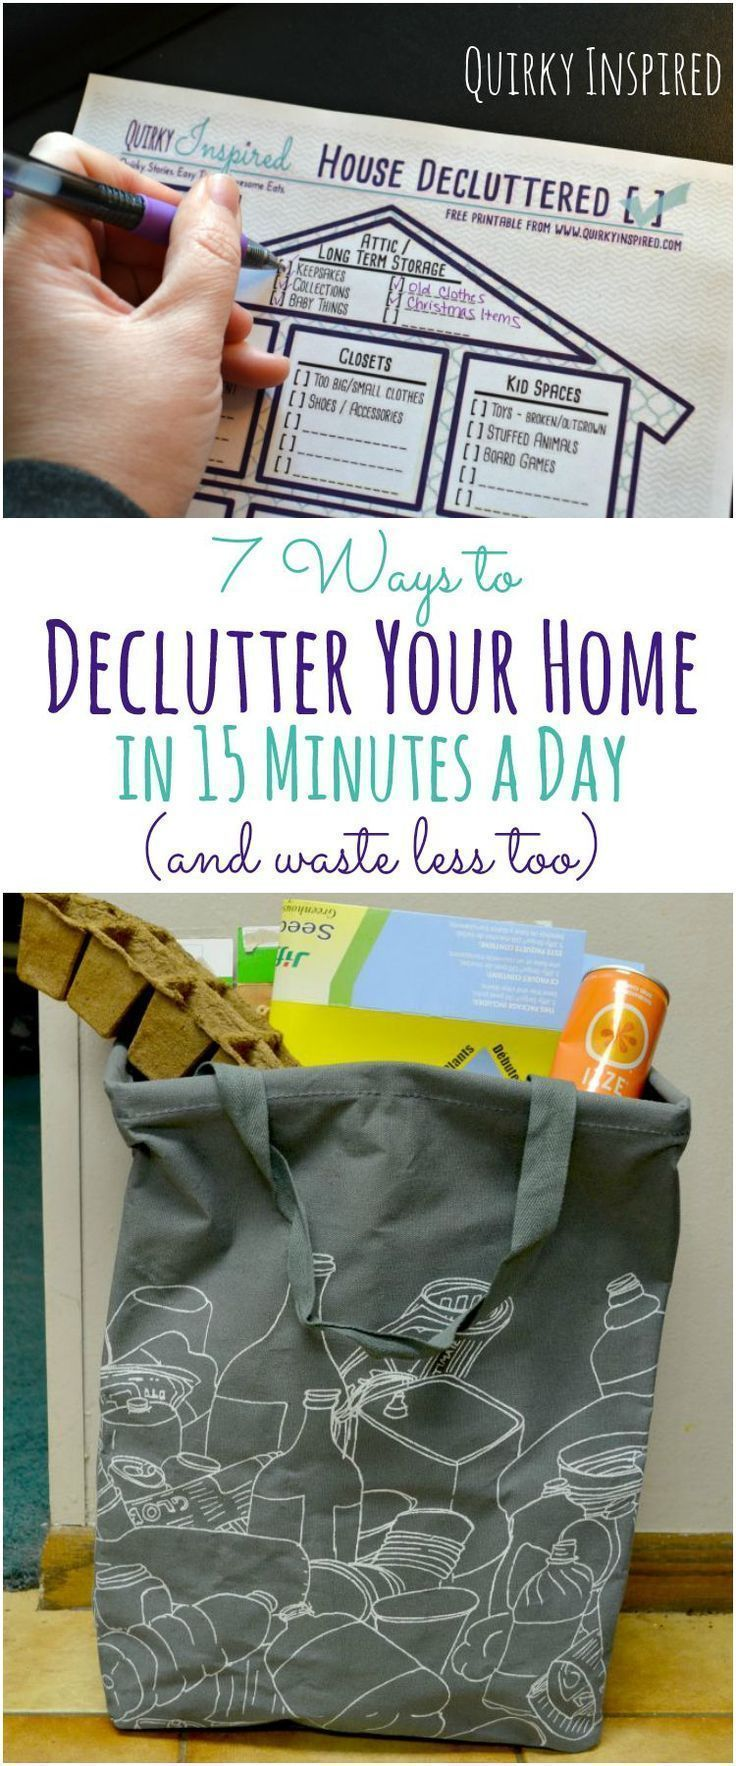 Tired of all the clutter in your house? 7 Ways to Declutter your home in 15 minutes a day with free printable. PLUS reduce your waste challenge! #Ad #declutterhelp #clutterclearing